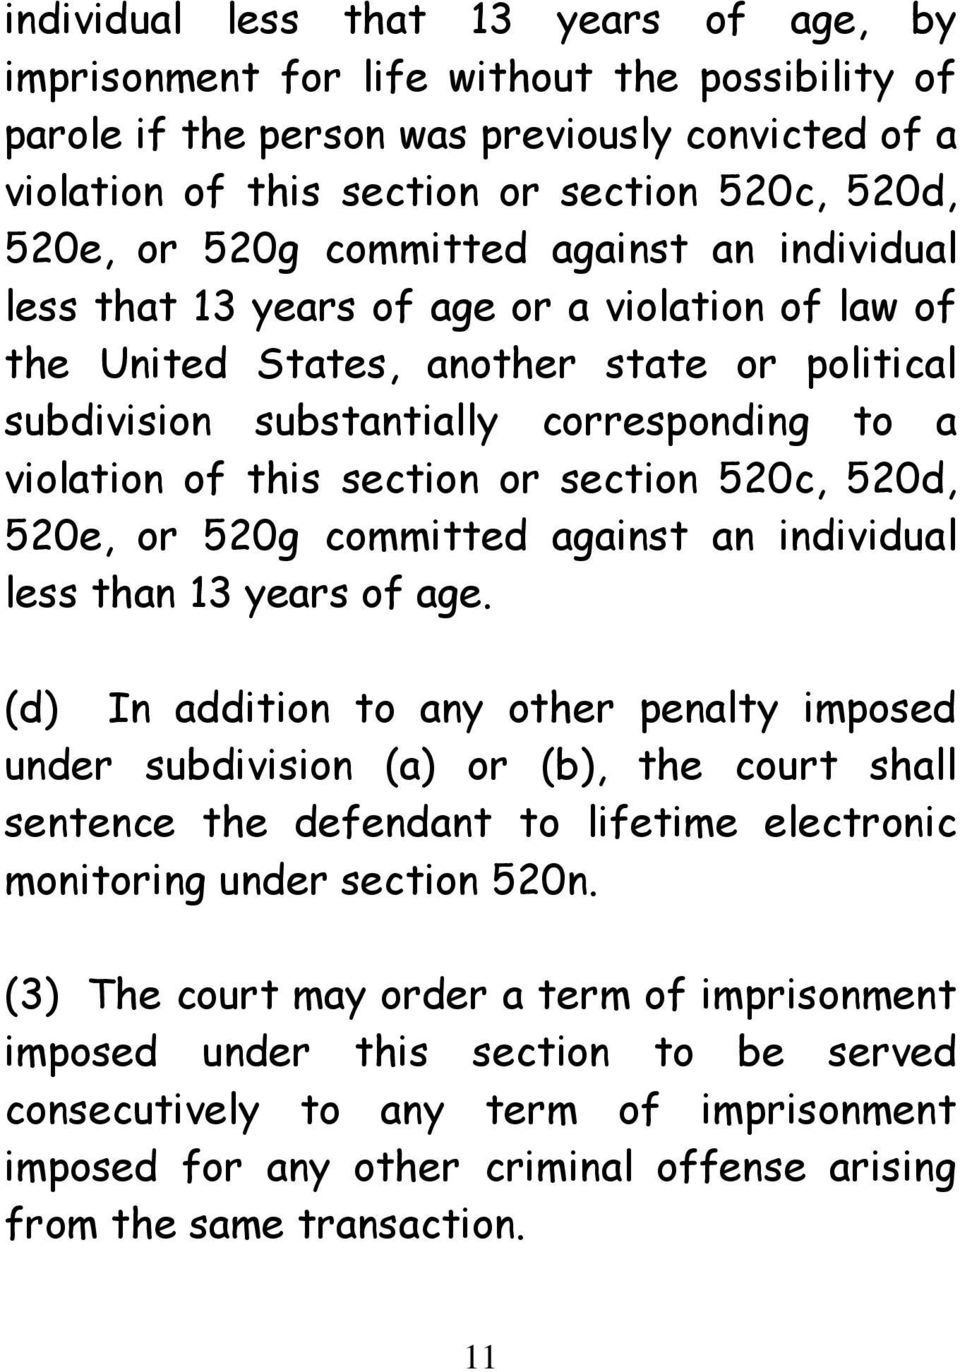 section or section 520c, 520d, 520e, or 520g committed against an individual less than 13 years of age.